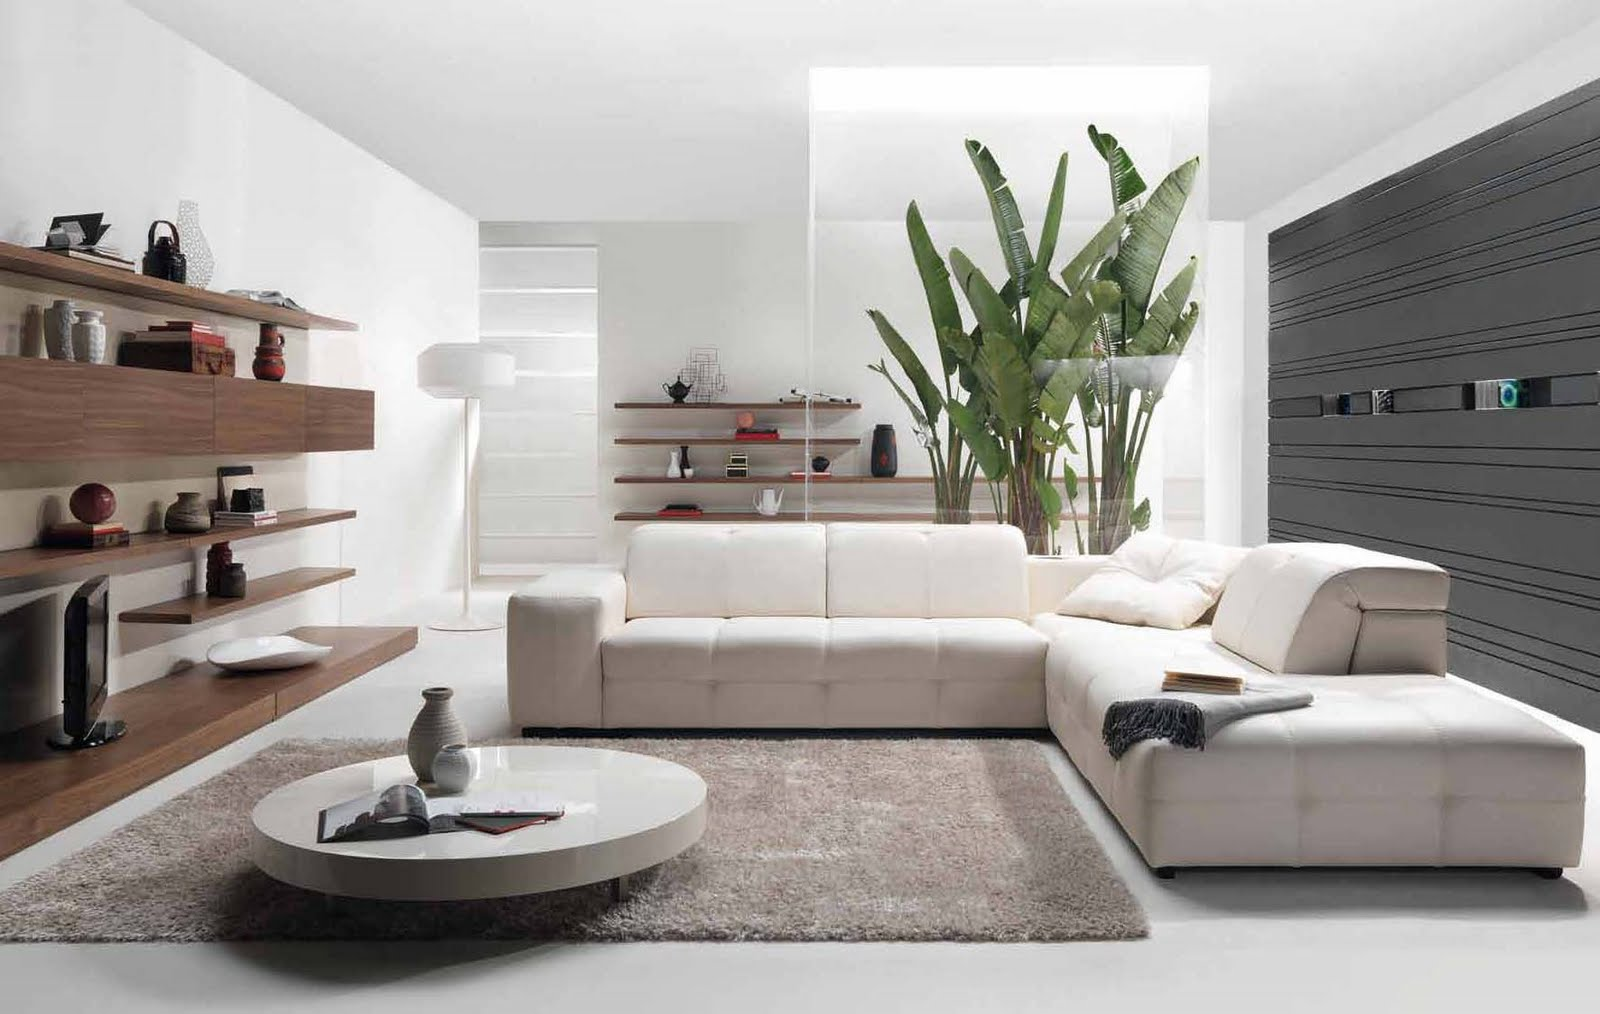 Future house design modern living room interior design for Modern home interior designs